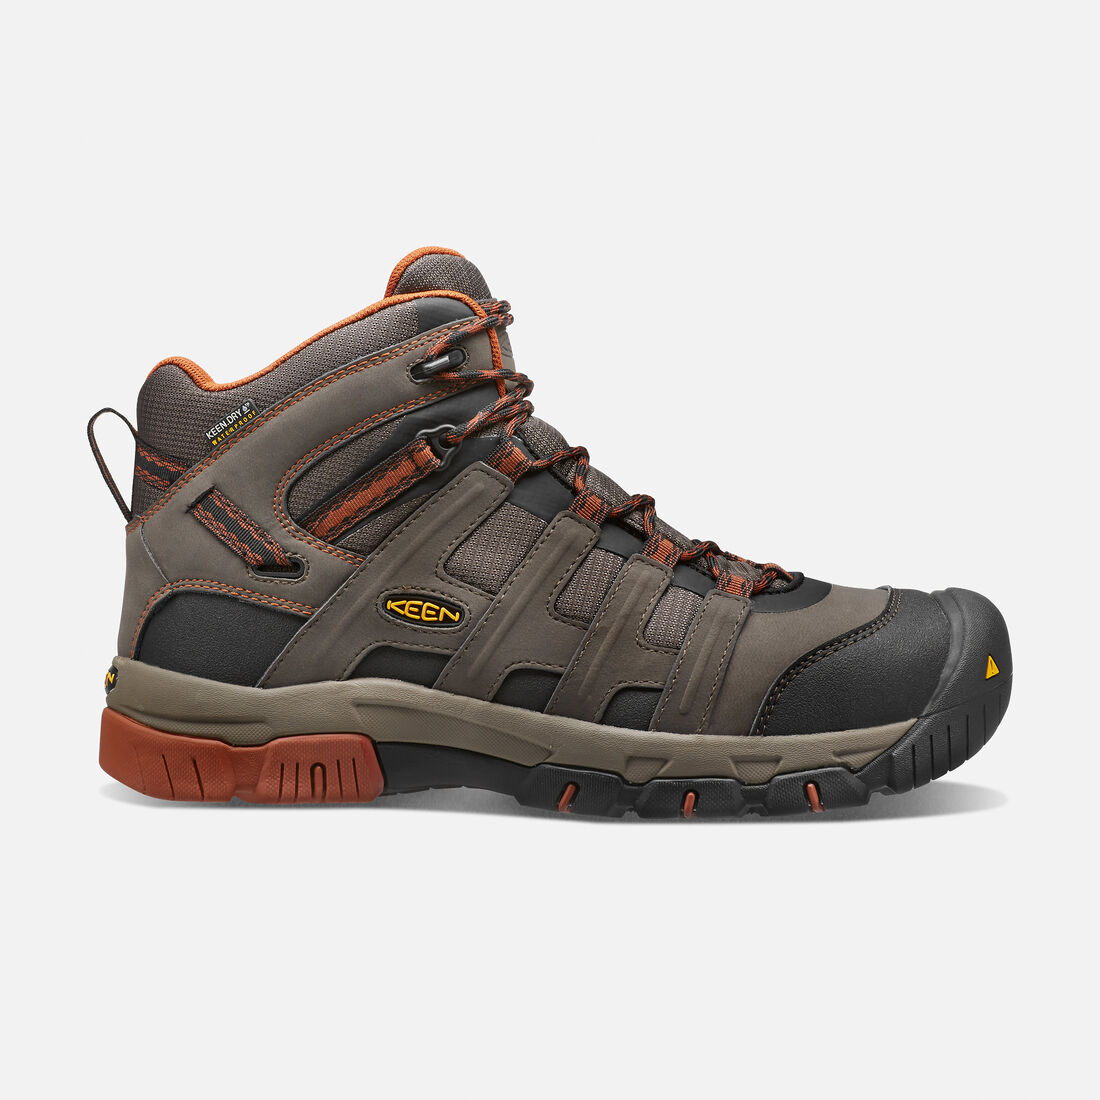 Men's Omaha Waterproof Boot (Steel Toe) in Black Olive/Gingerbread - large view.